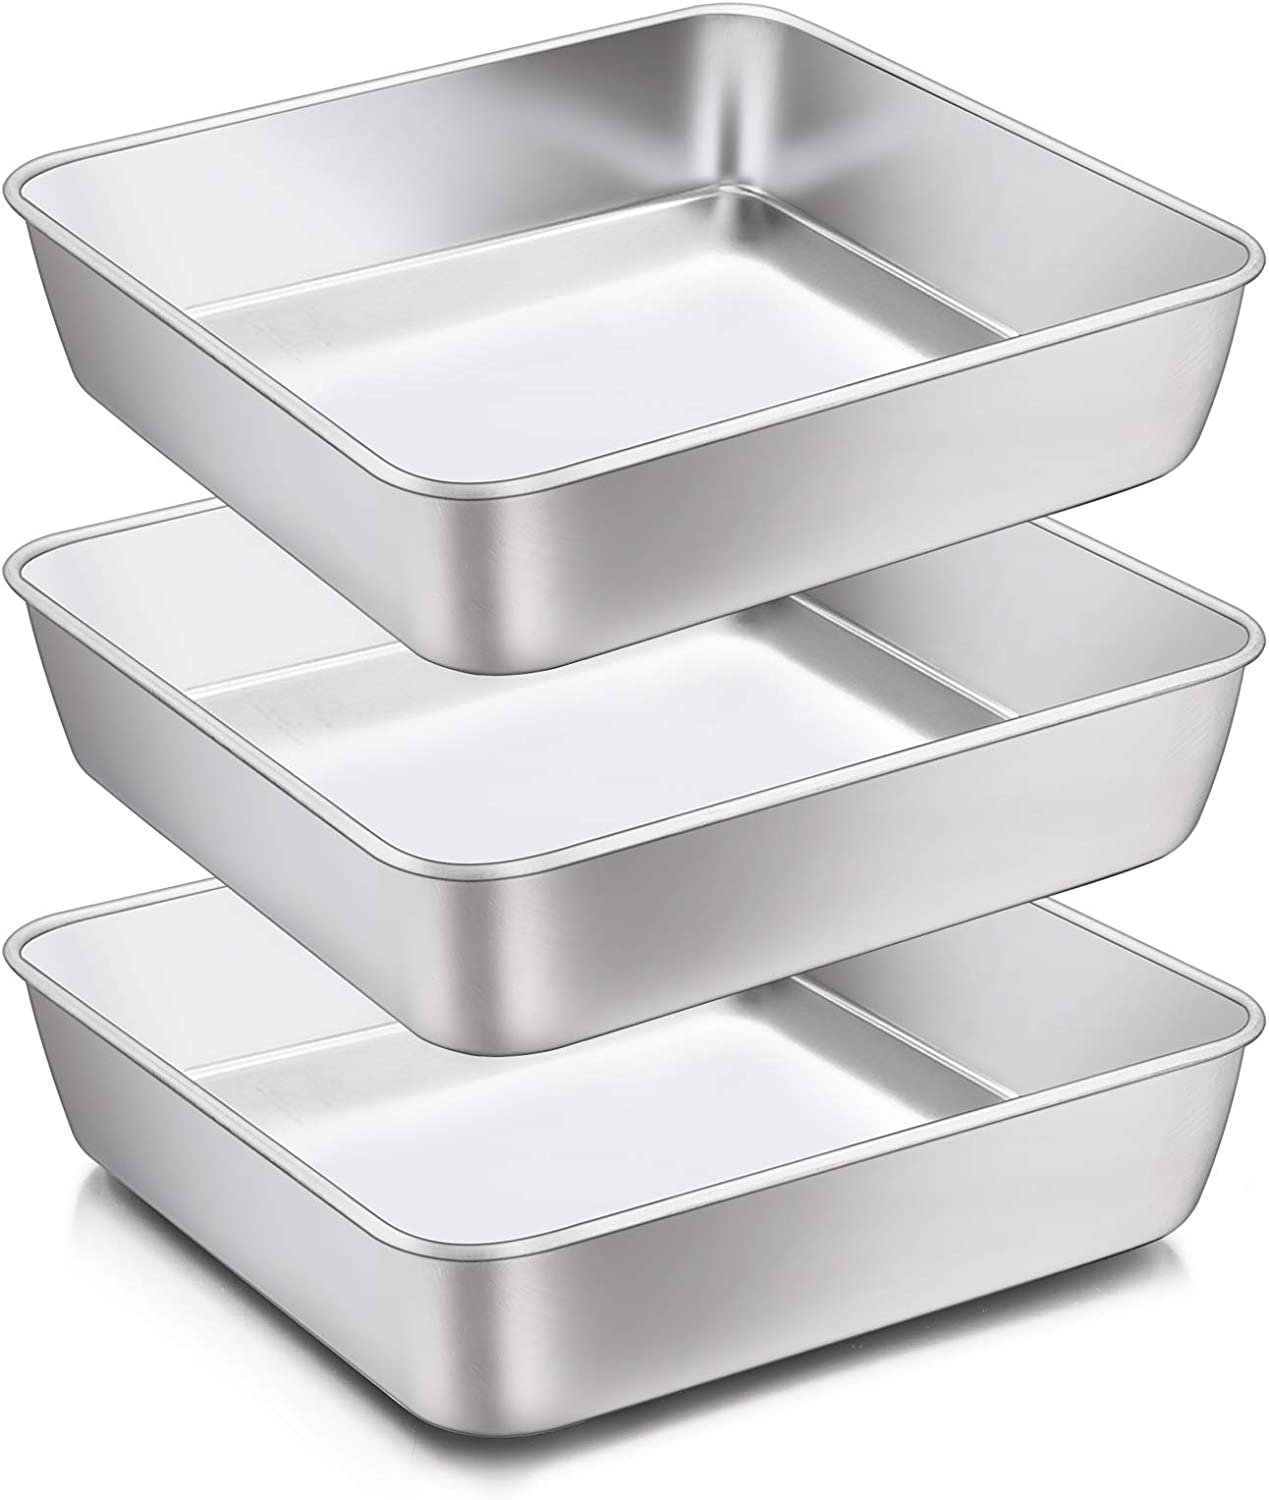 8 Super beauty product restock quality top! x 8-Inch Baking Pan E-far Square Brownie Pans Sta Cake Atlanta Mall